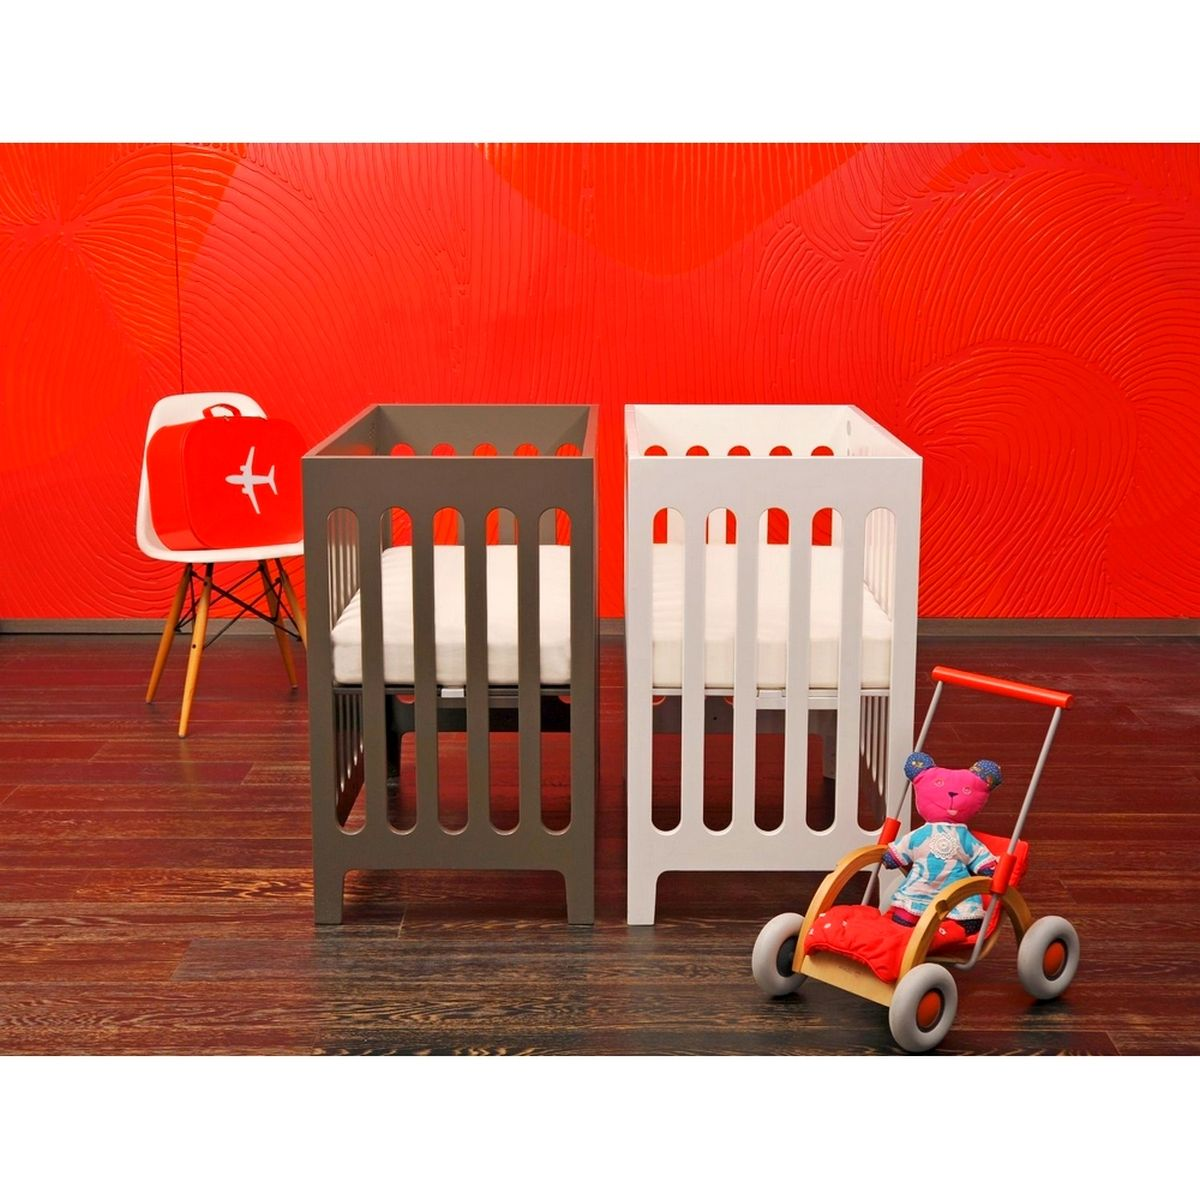 Double Small Cribs | House Ideas | Pinterest | Small crib, Crib and ...